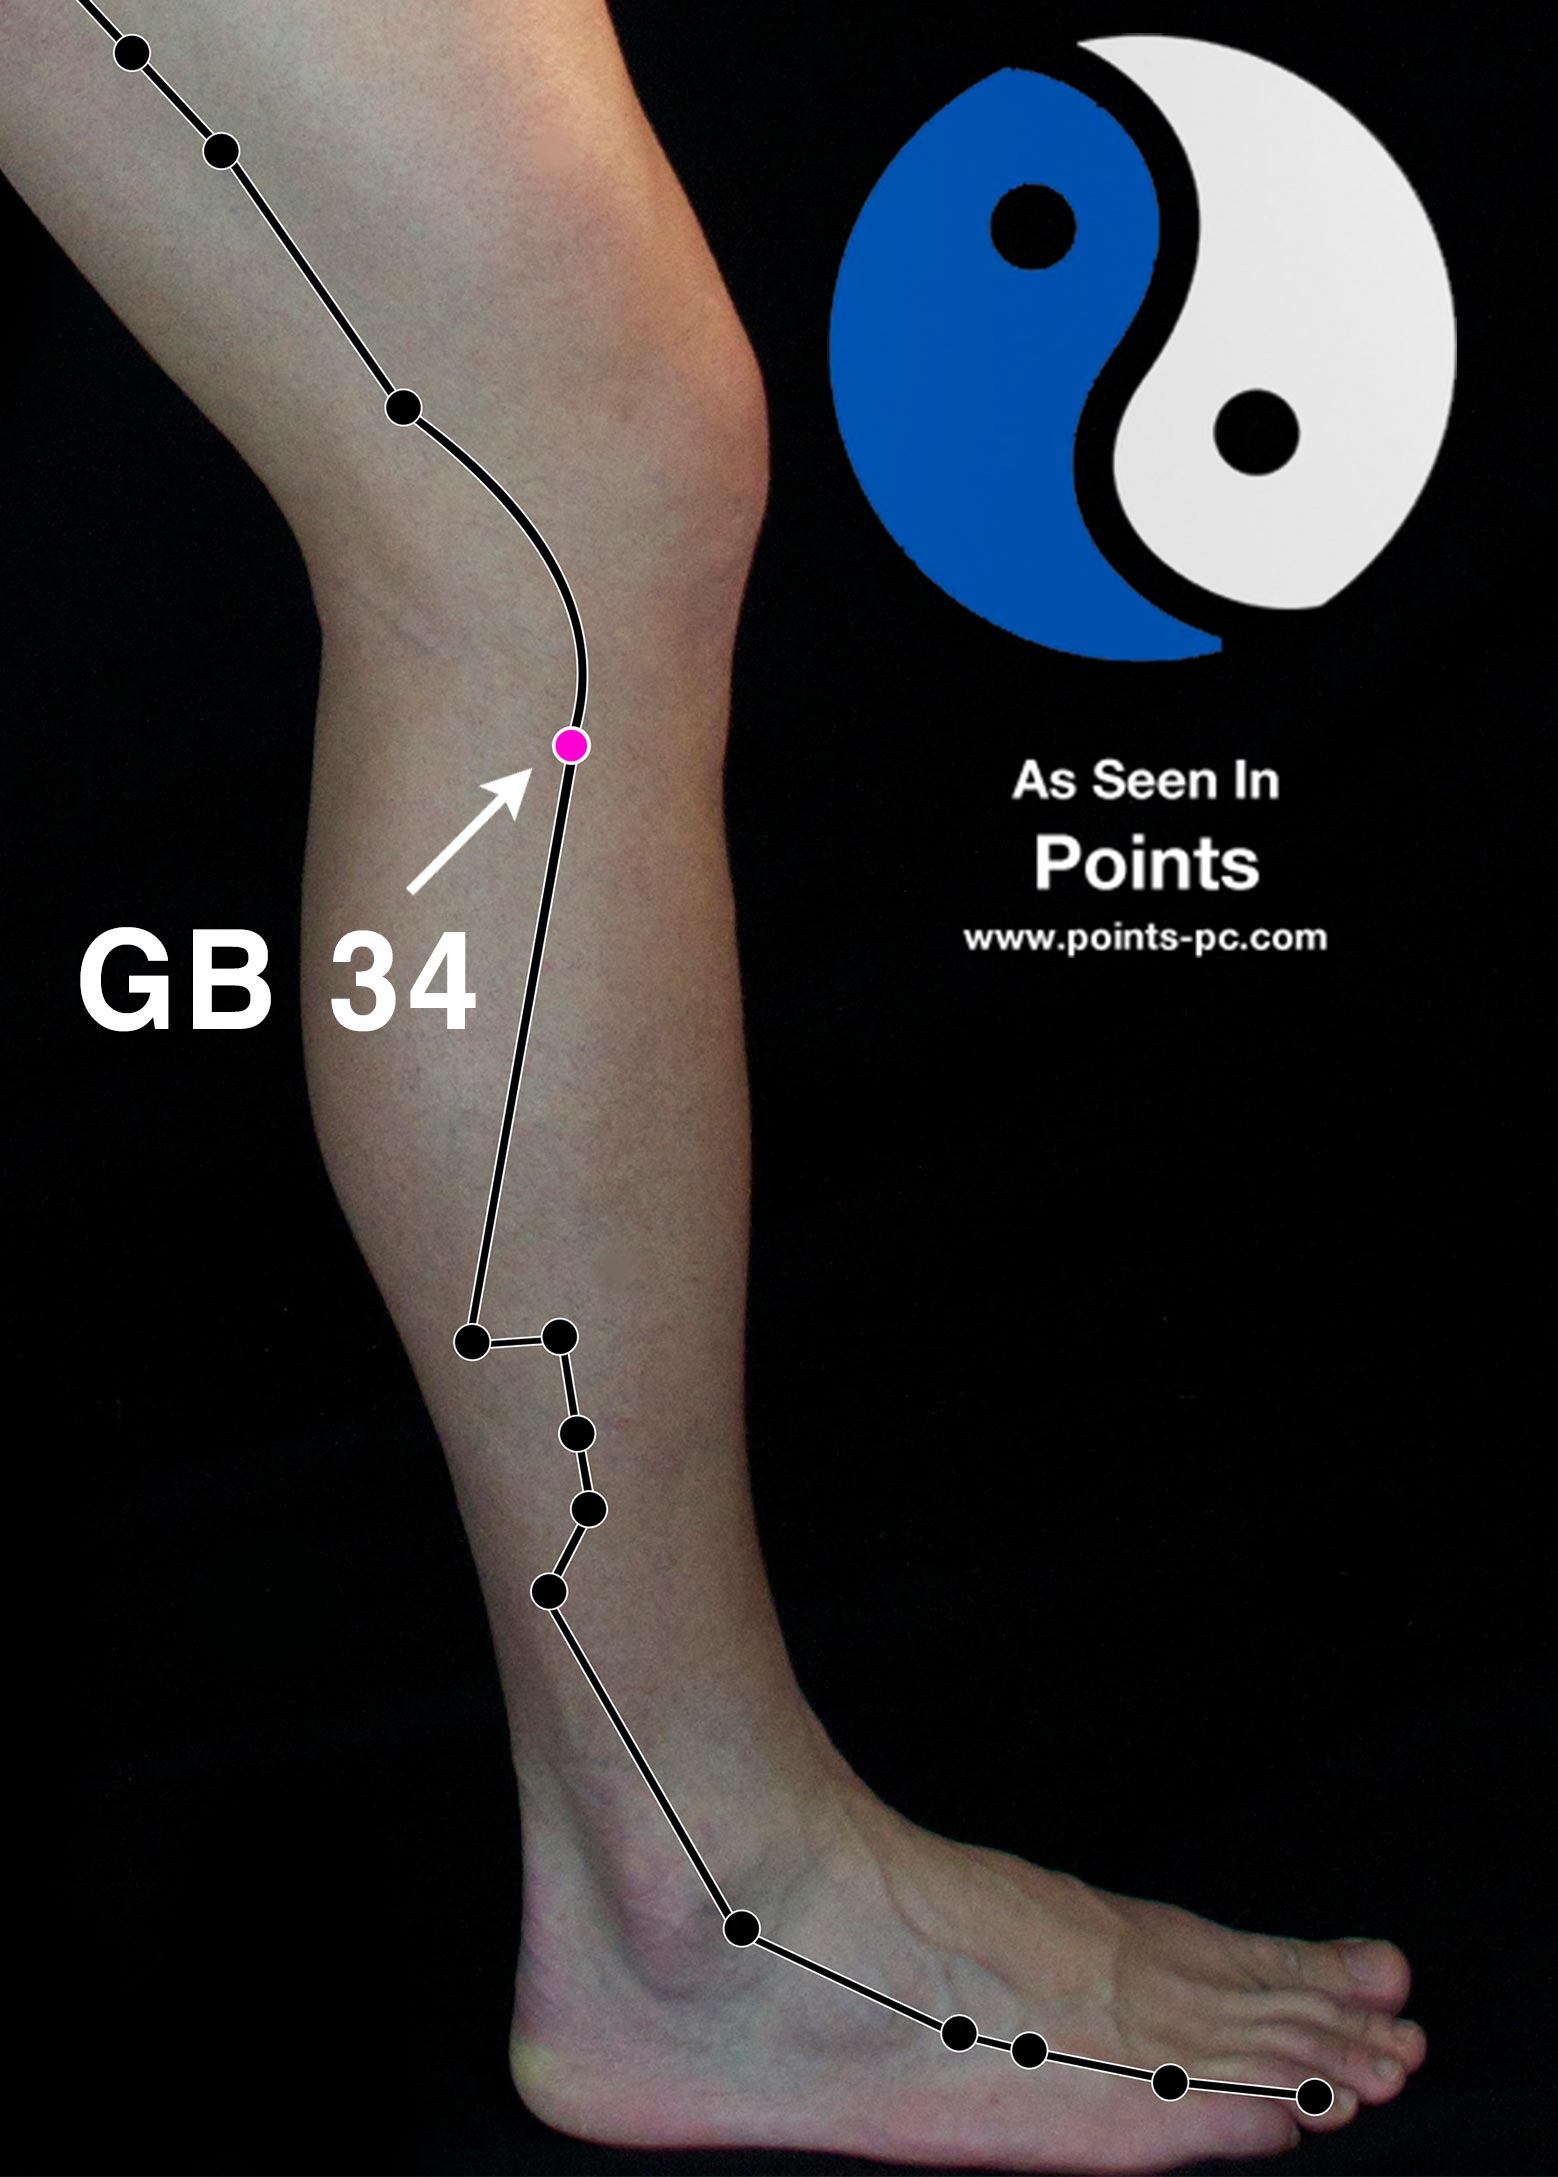 Acupuncture Point: Gallbladder 34 - Acupuncture Technology News